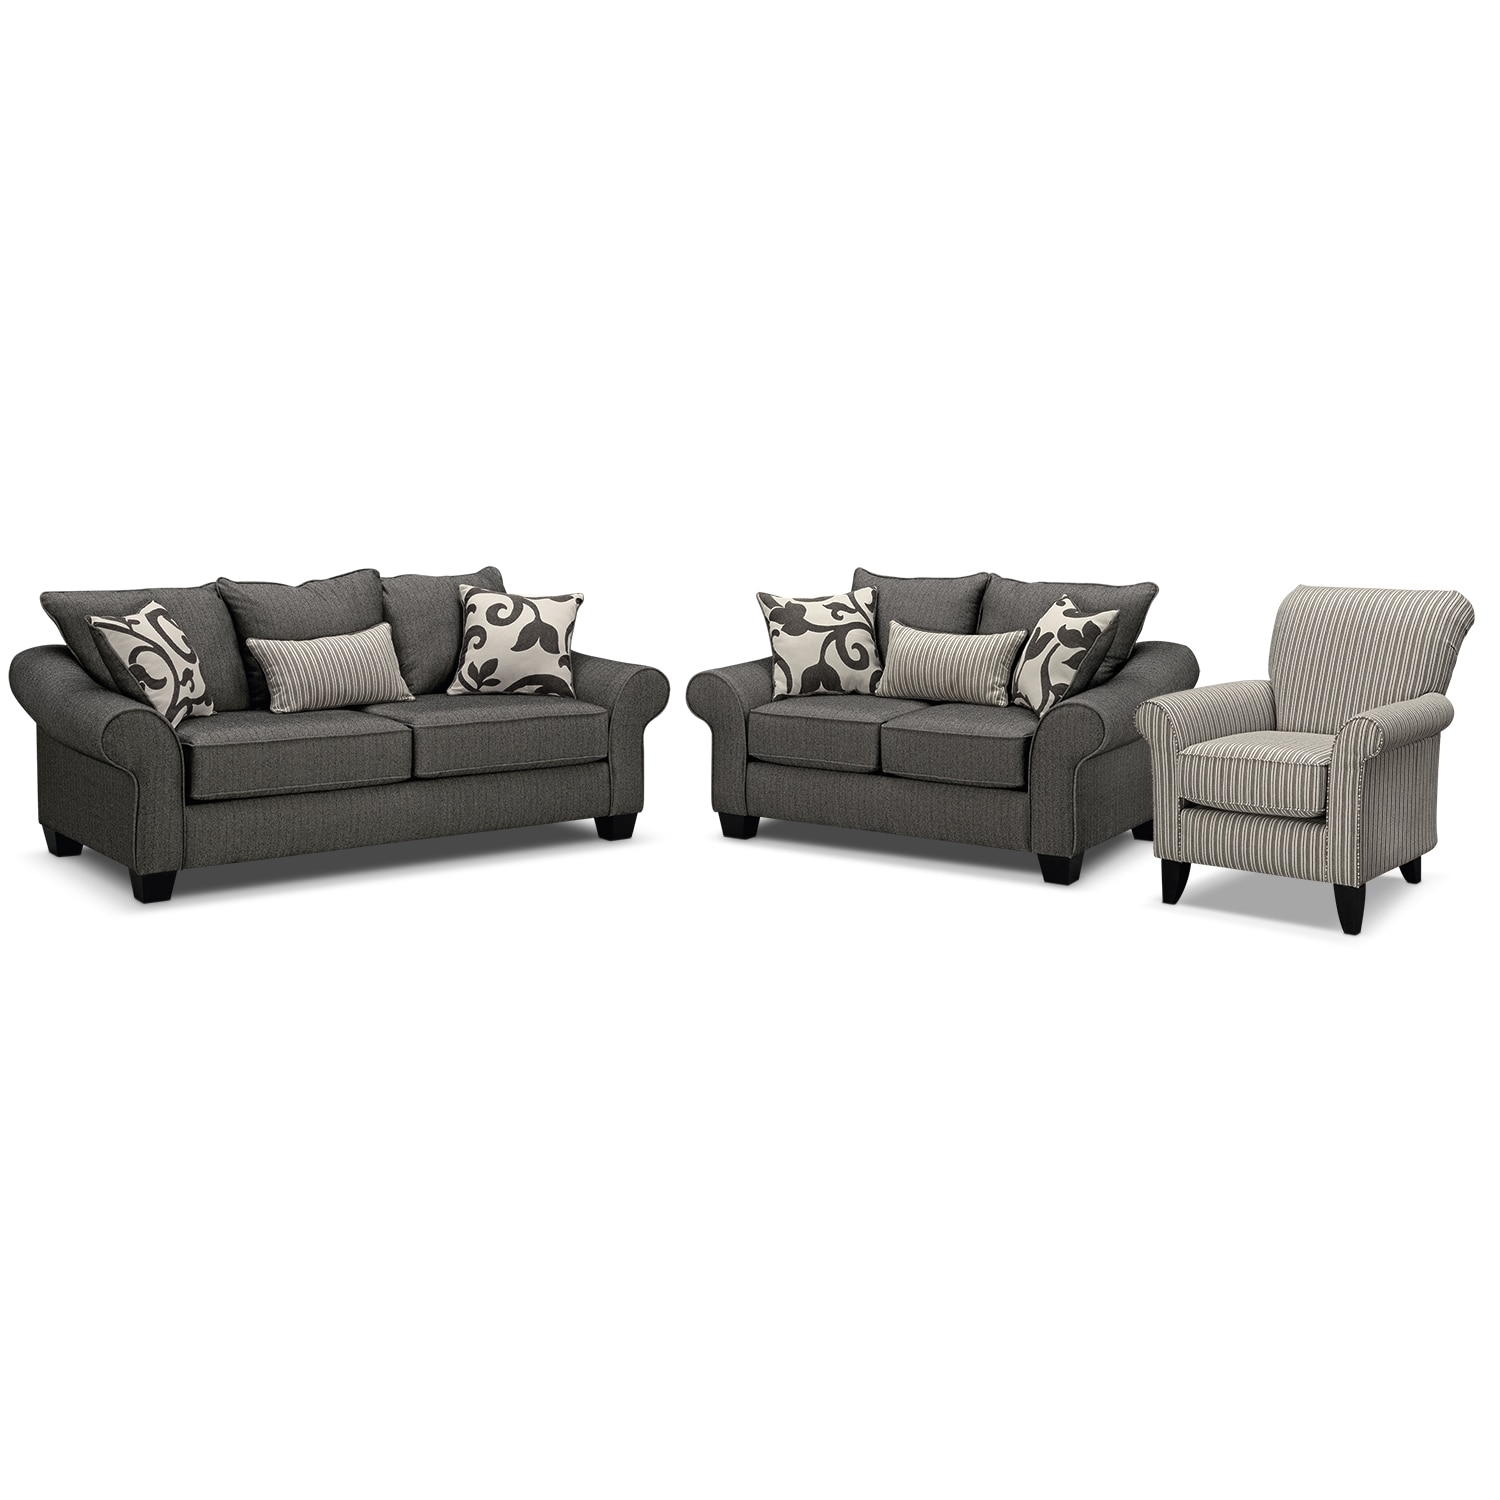 Colette Gray 3 Pc Sleeper Living Room With Accent Chair